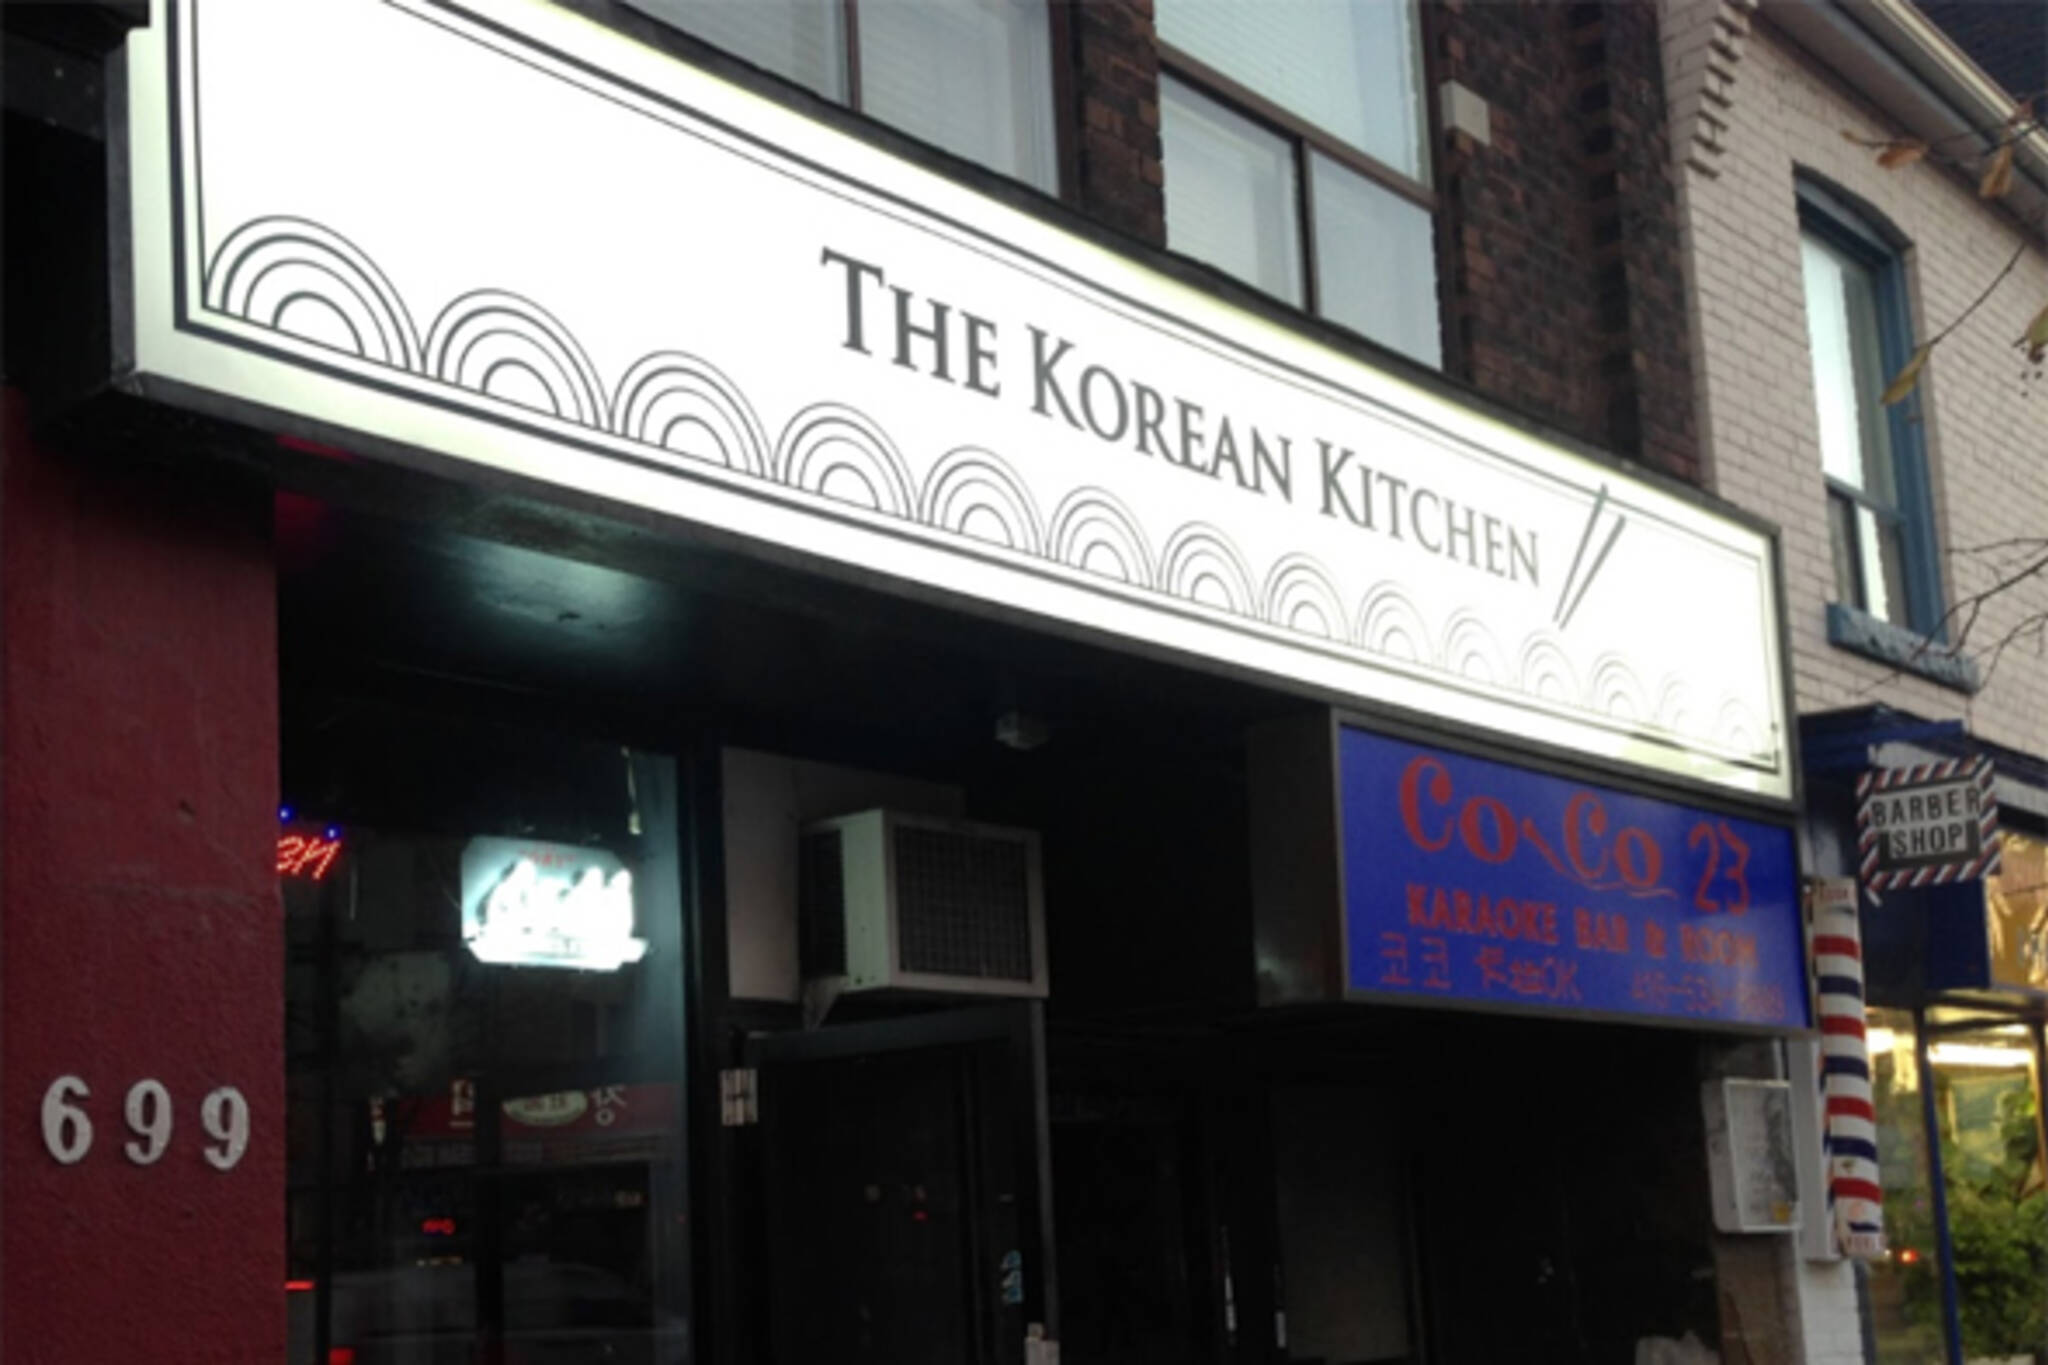 The Korean Kitchen Toronto